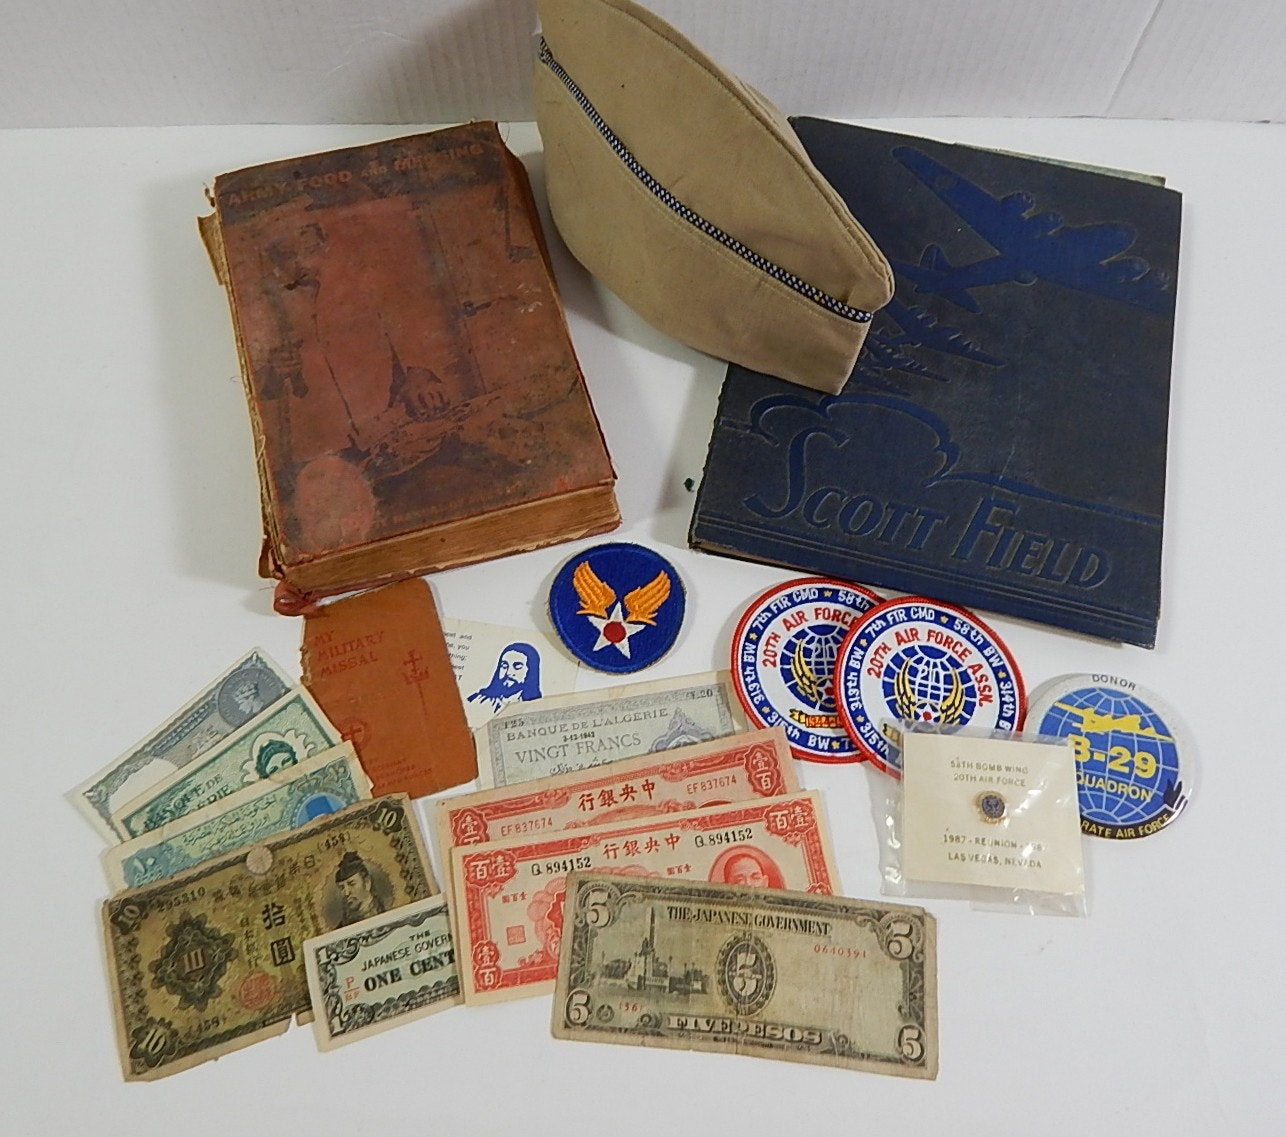 Military Collectibles with Paper Currency, Books, Patches, and More